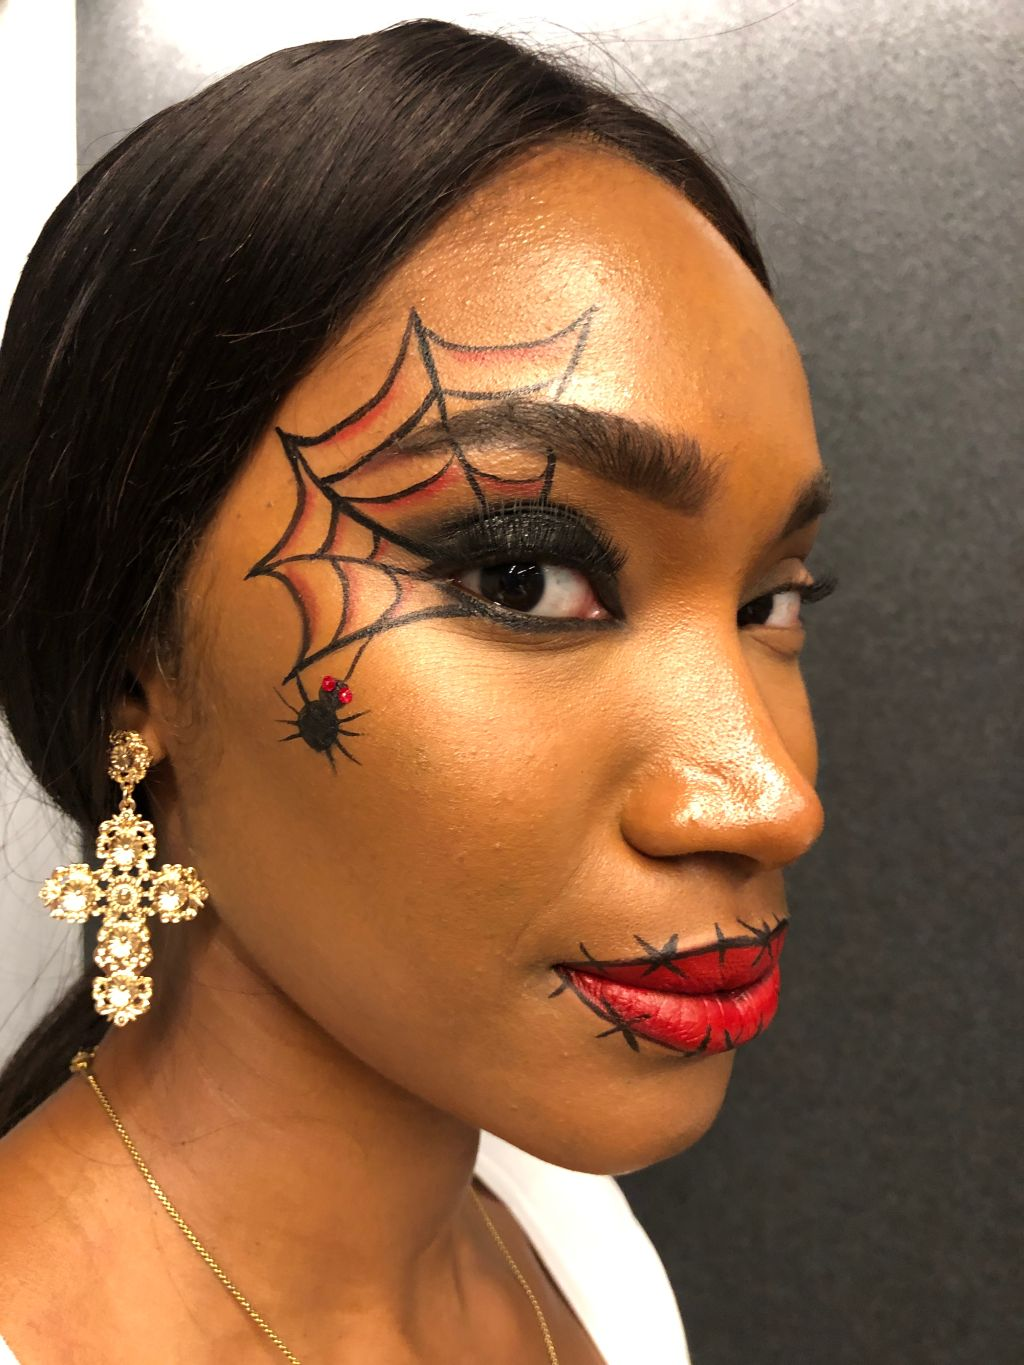 Pond's Halloween Makeup with Glamsquad